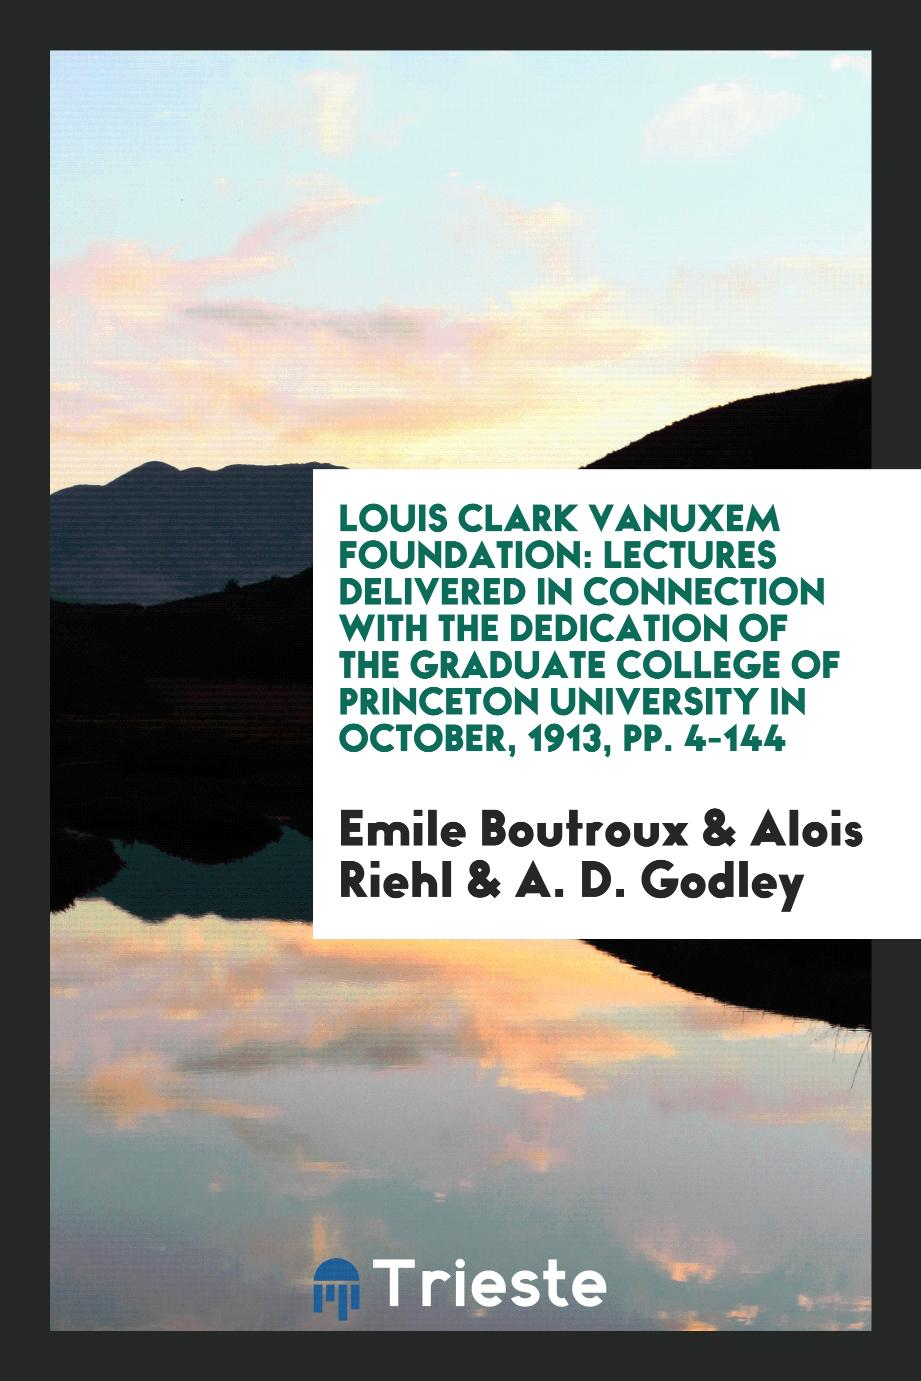 Louis Clark Vanuxem Foundation: Lectures Delivered in Connection with the Dedication of the Graduate College of Princeton University in October, 1913, pp. 4-144